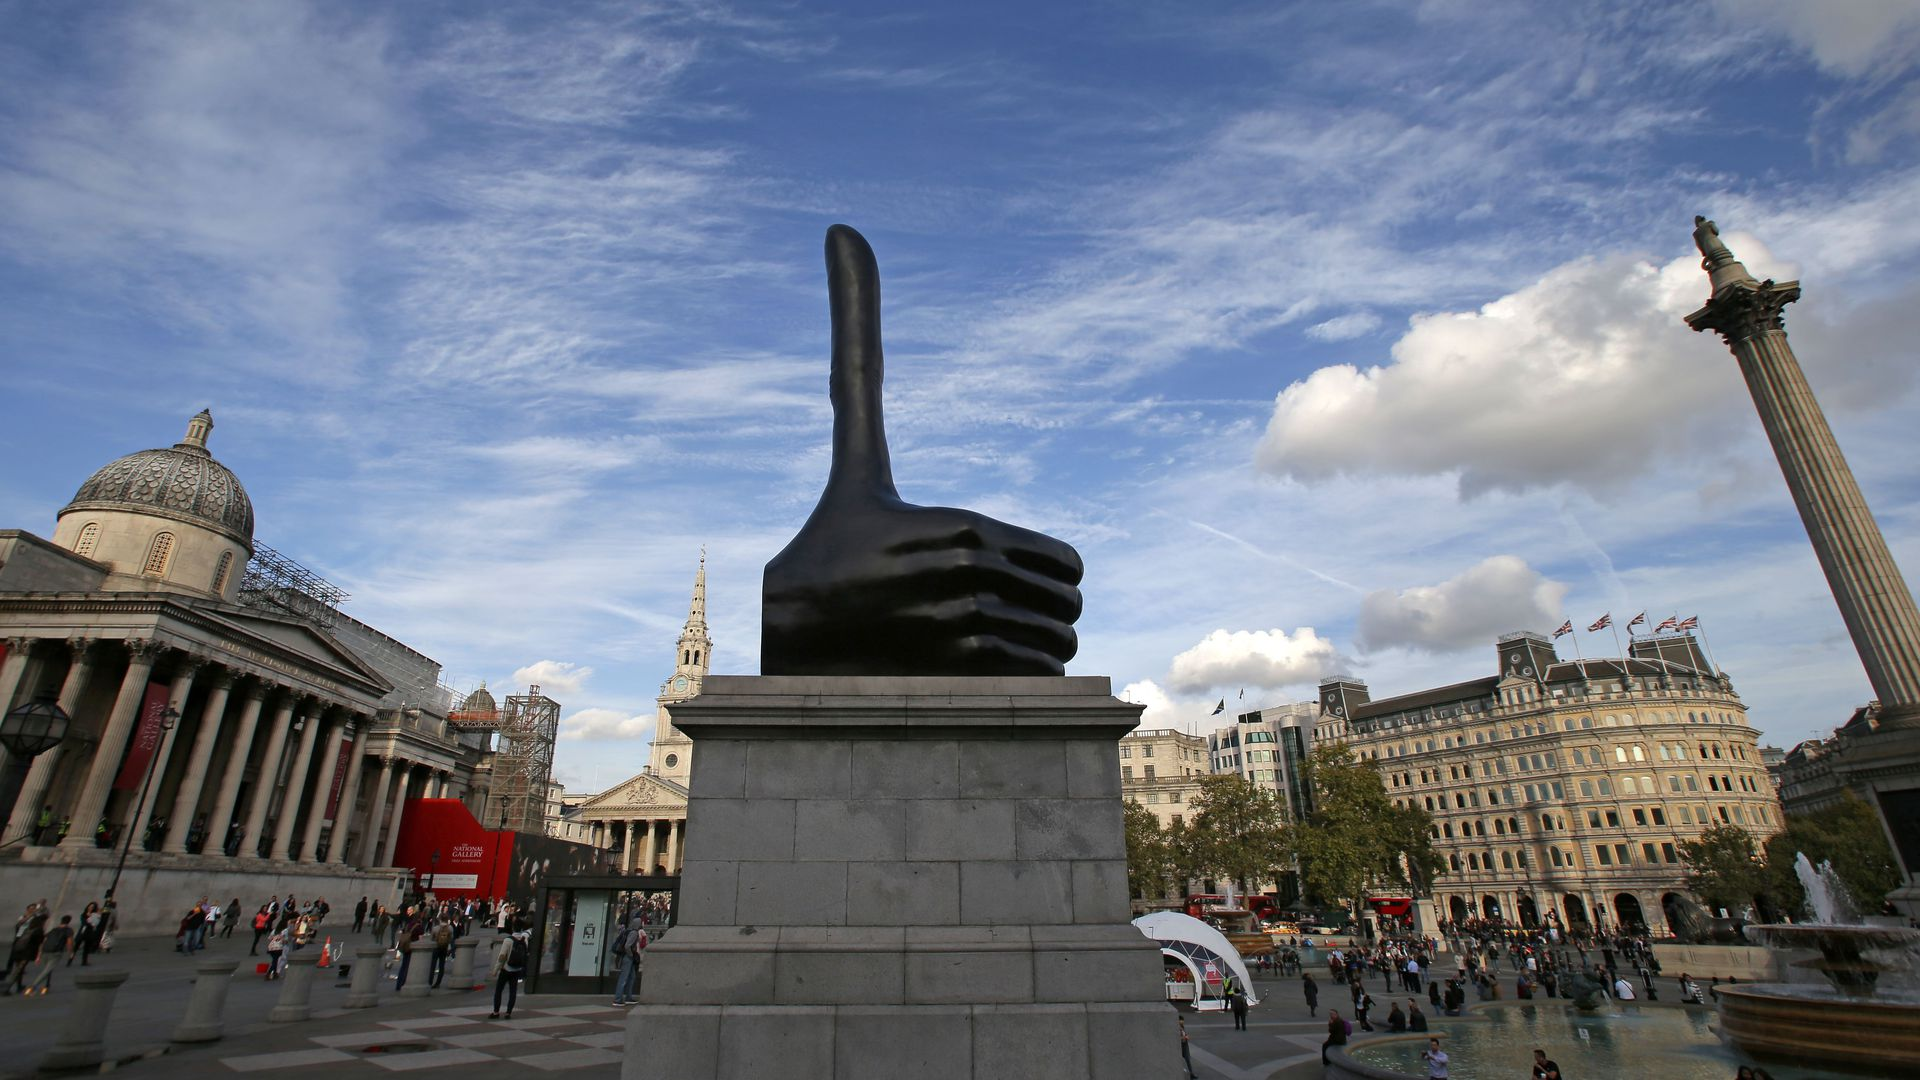 Thumbs up statue